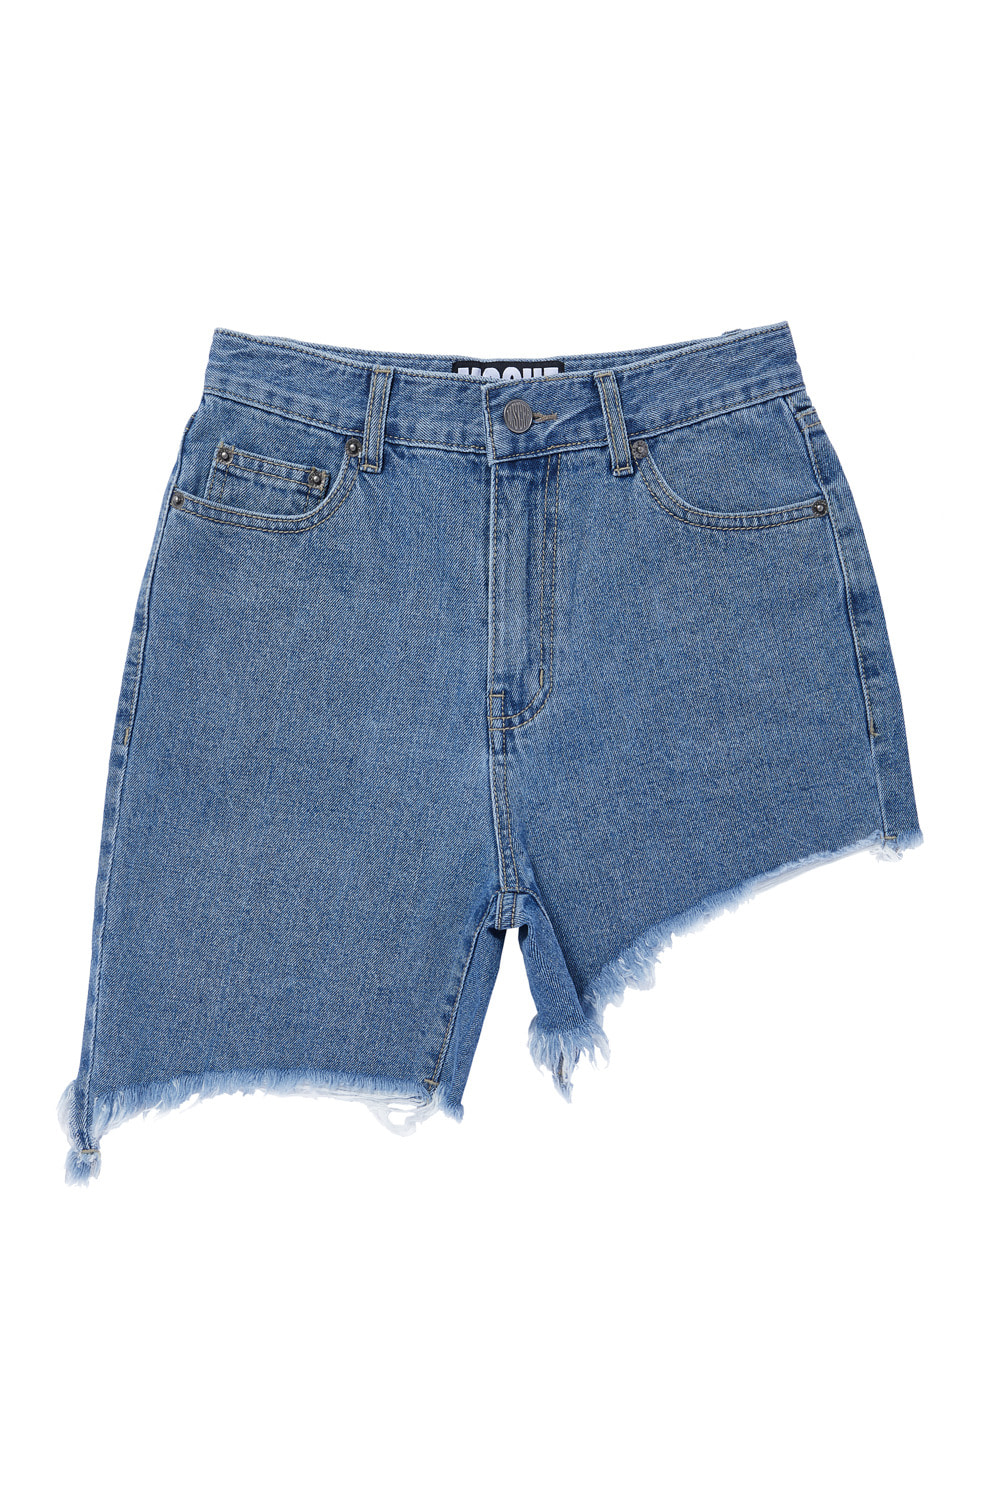 UNBALANCED SHORTS_blue